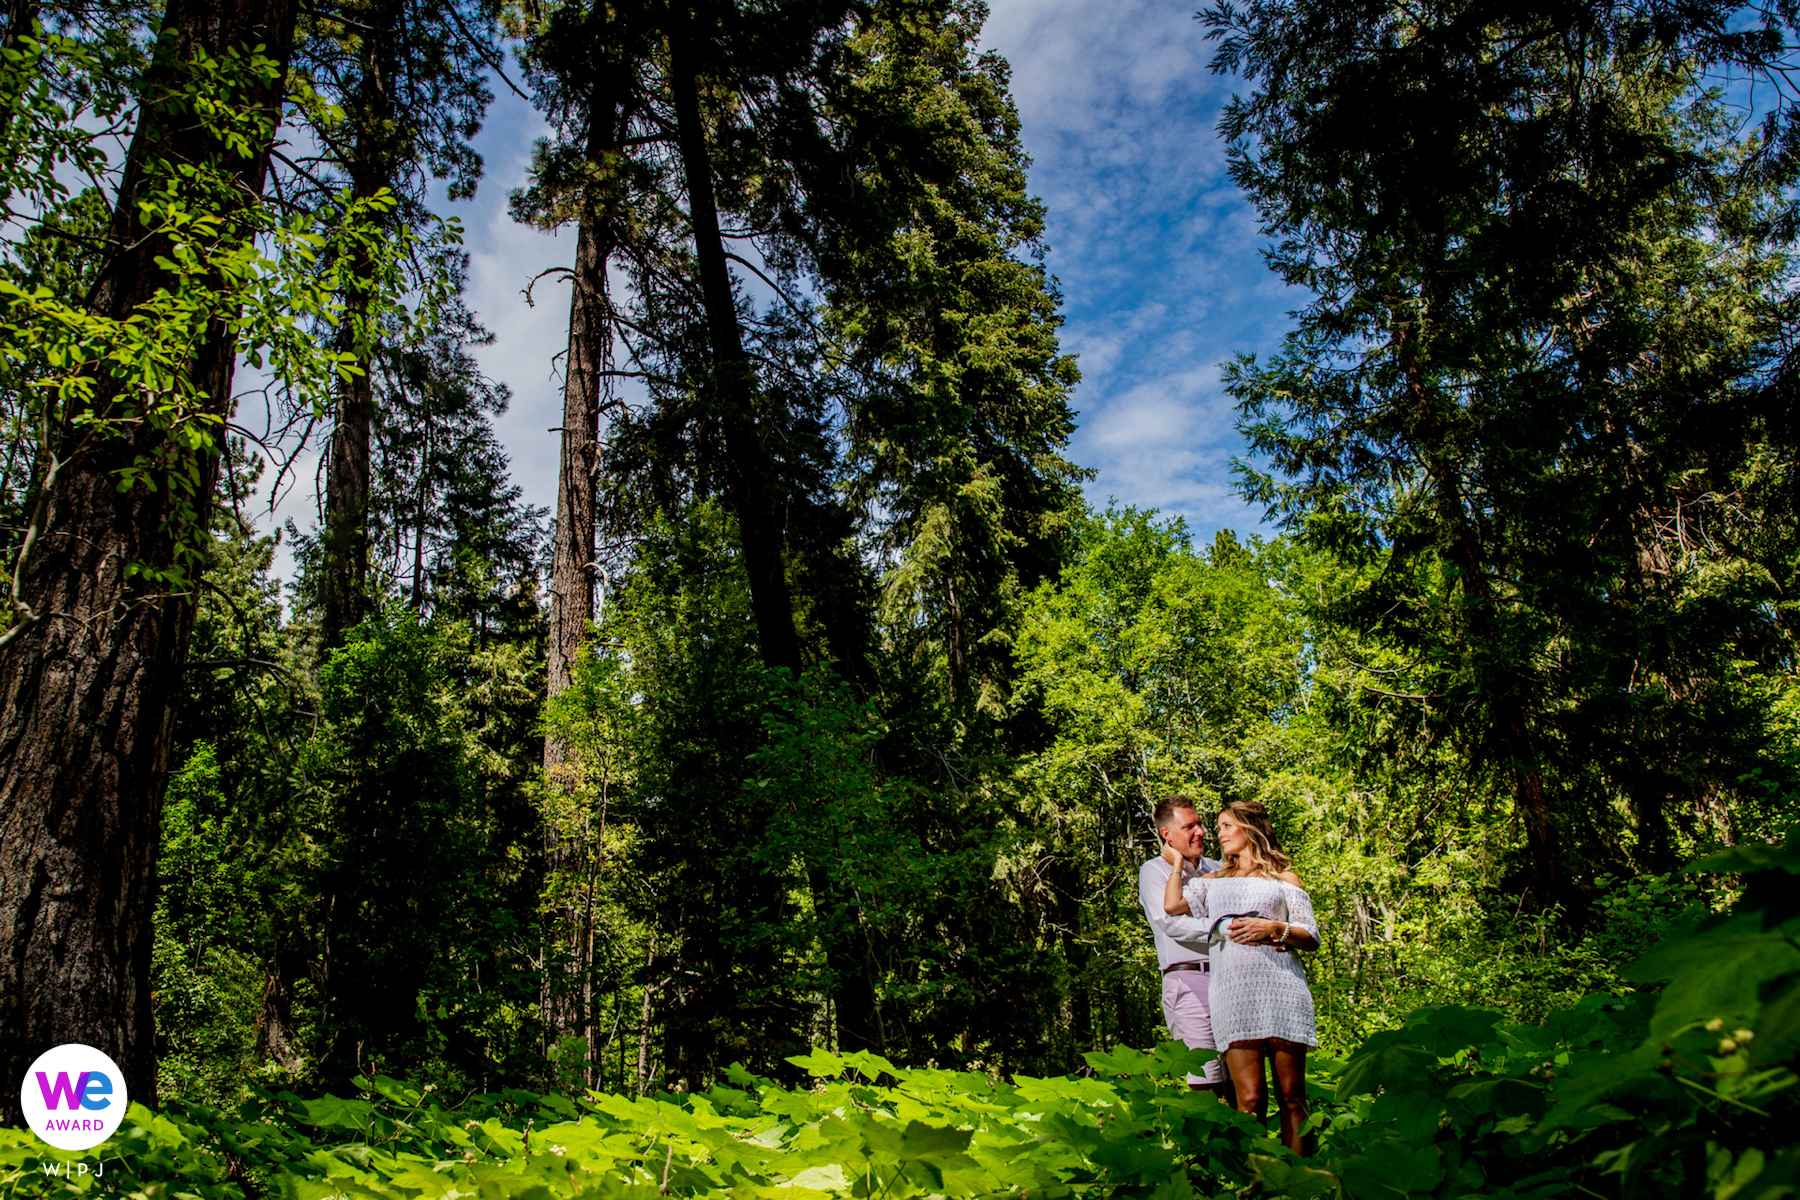 Skylandia Beach Park - Wedding Photography for Lake Tahoe   A romantic portrait of the bride and groom